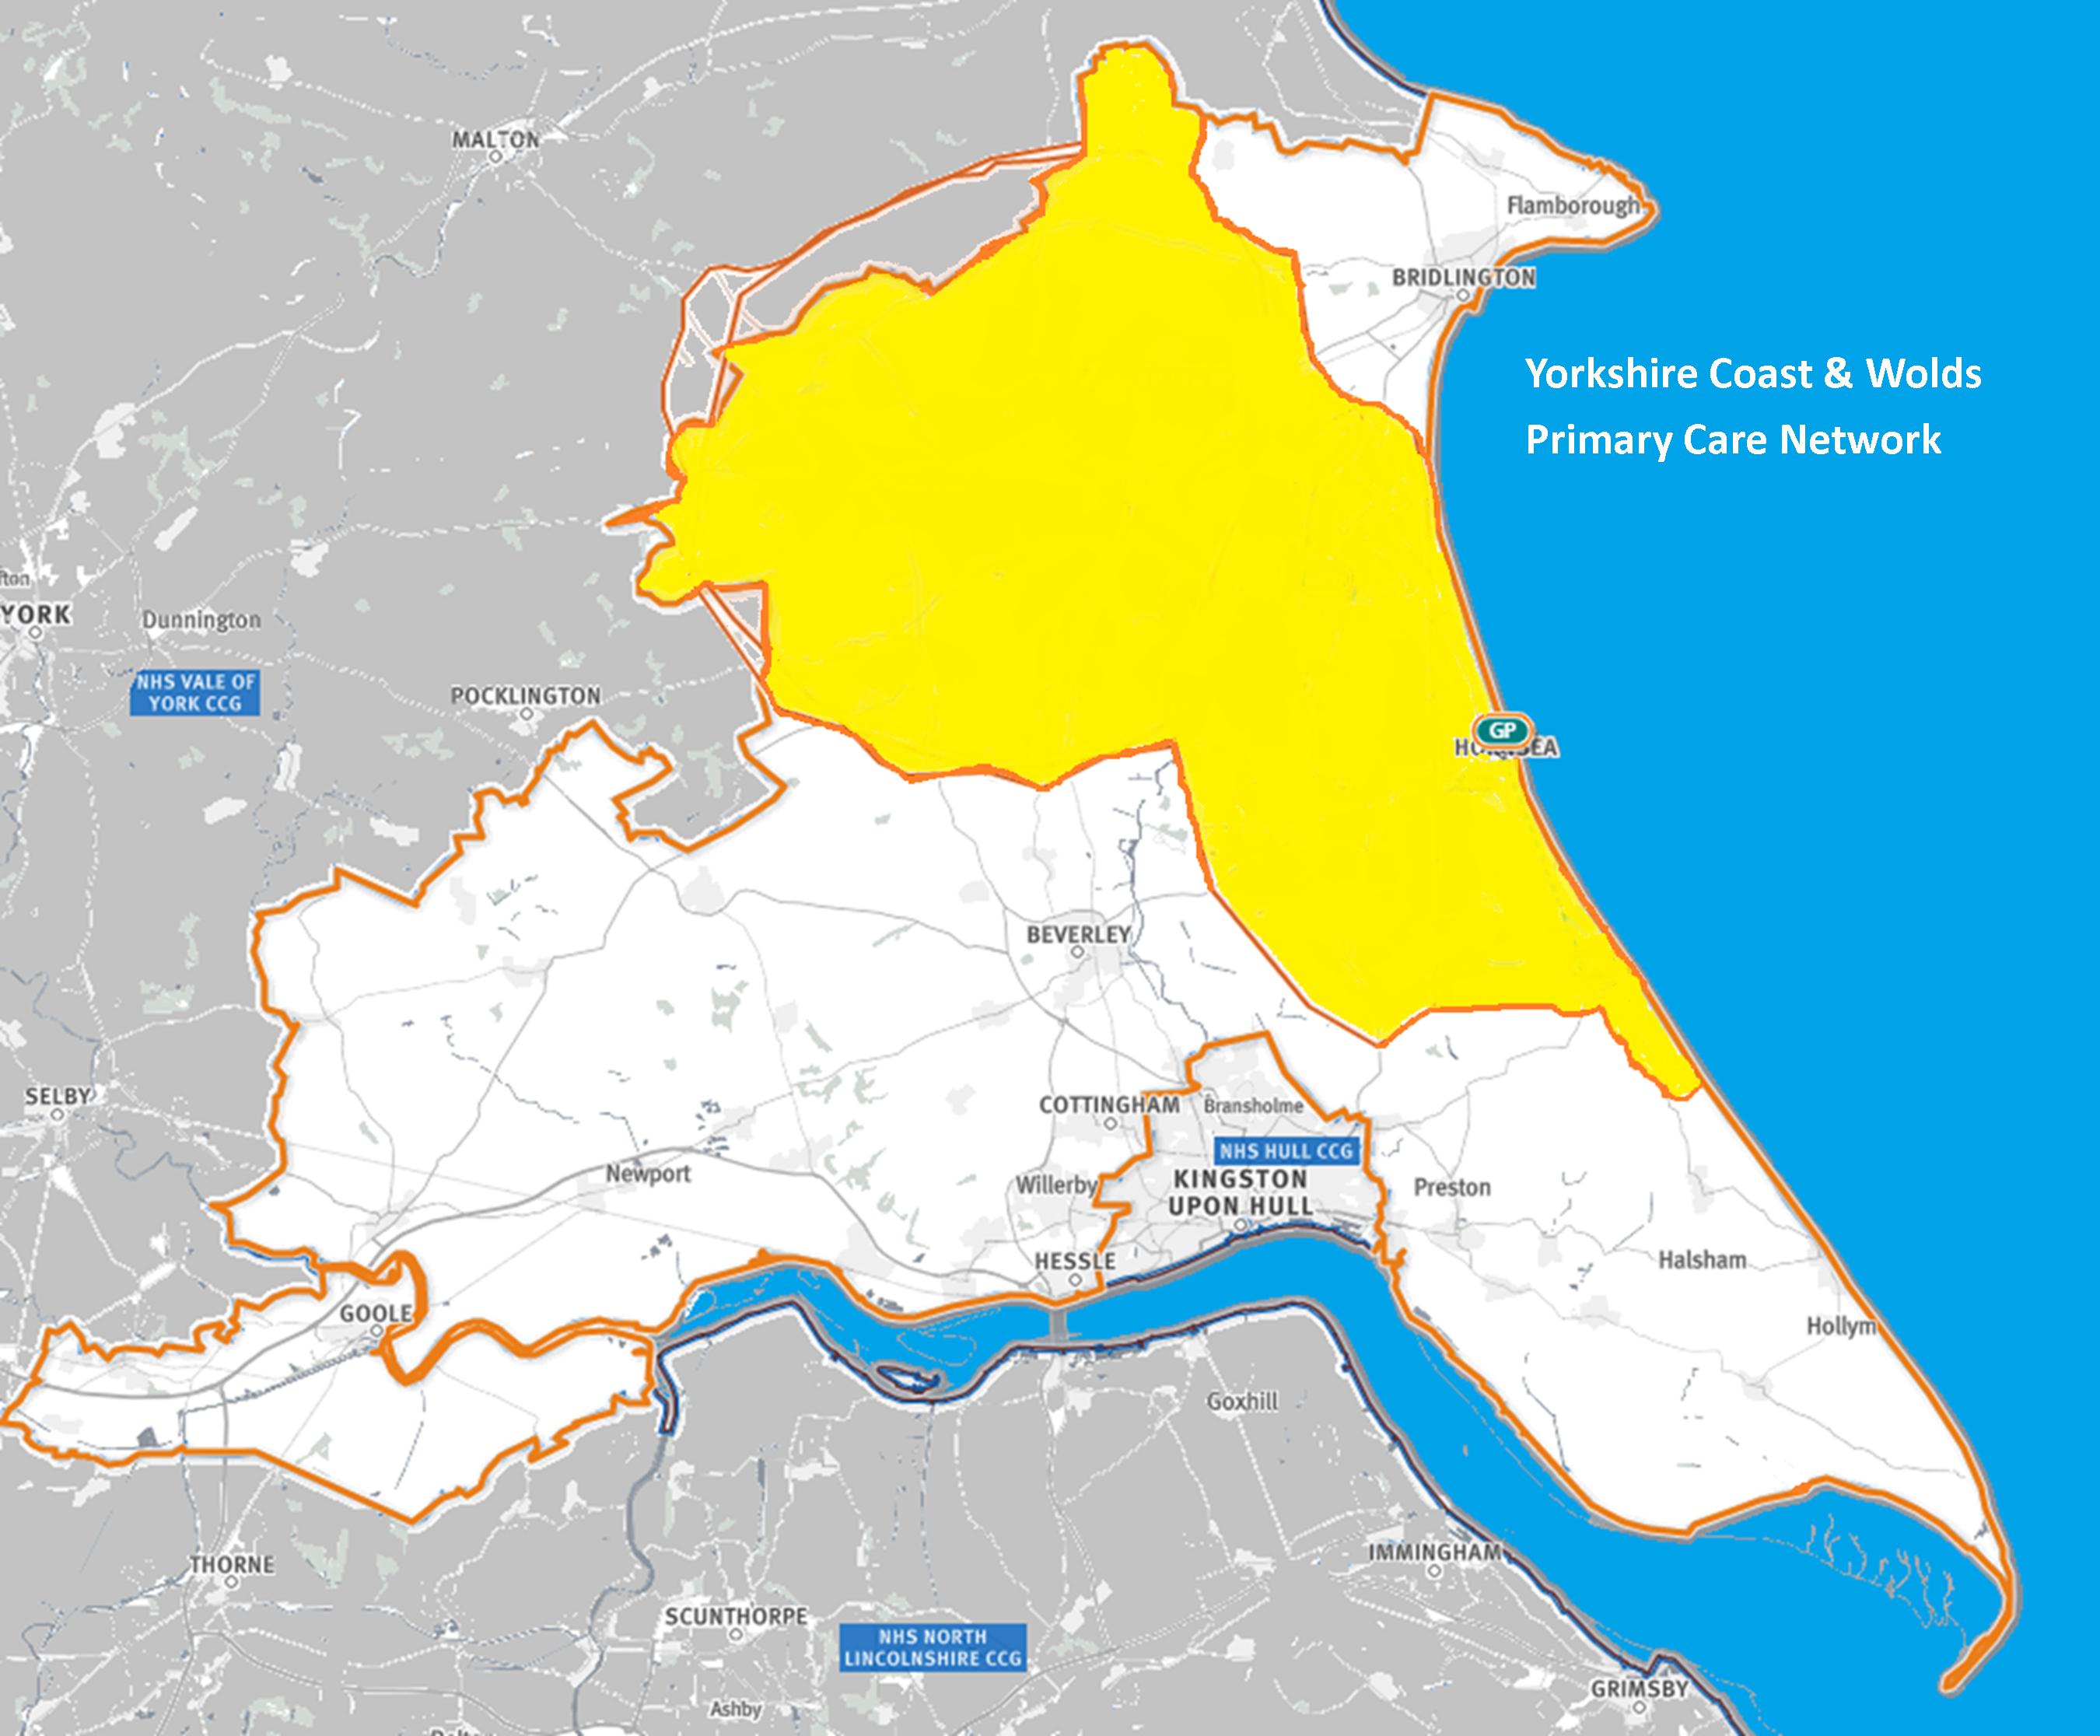 Map of the area covered by the Yorkshire Coast and Wolds PCN